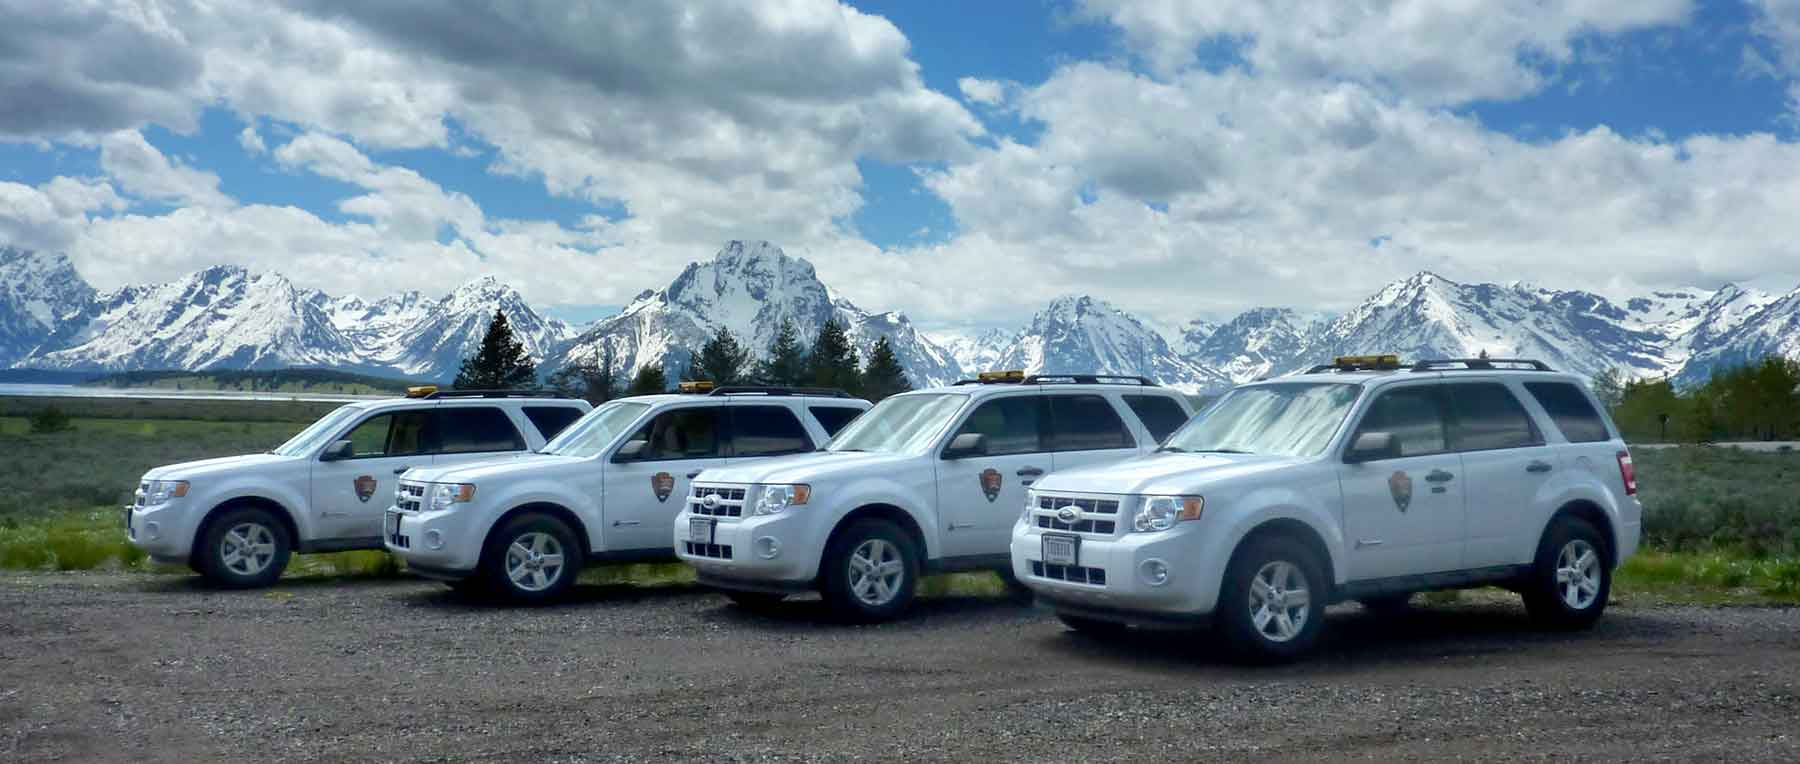 Photo of hybrid Ford Escape vehicles at Grand Teton National Park